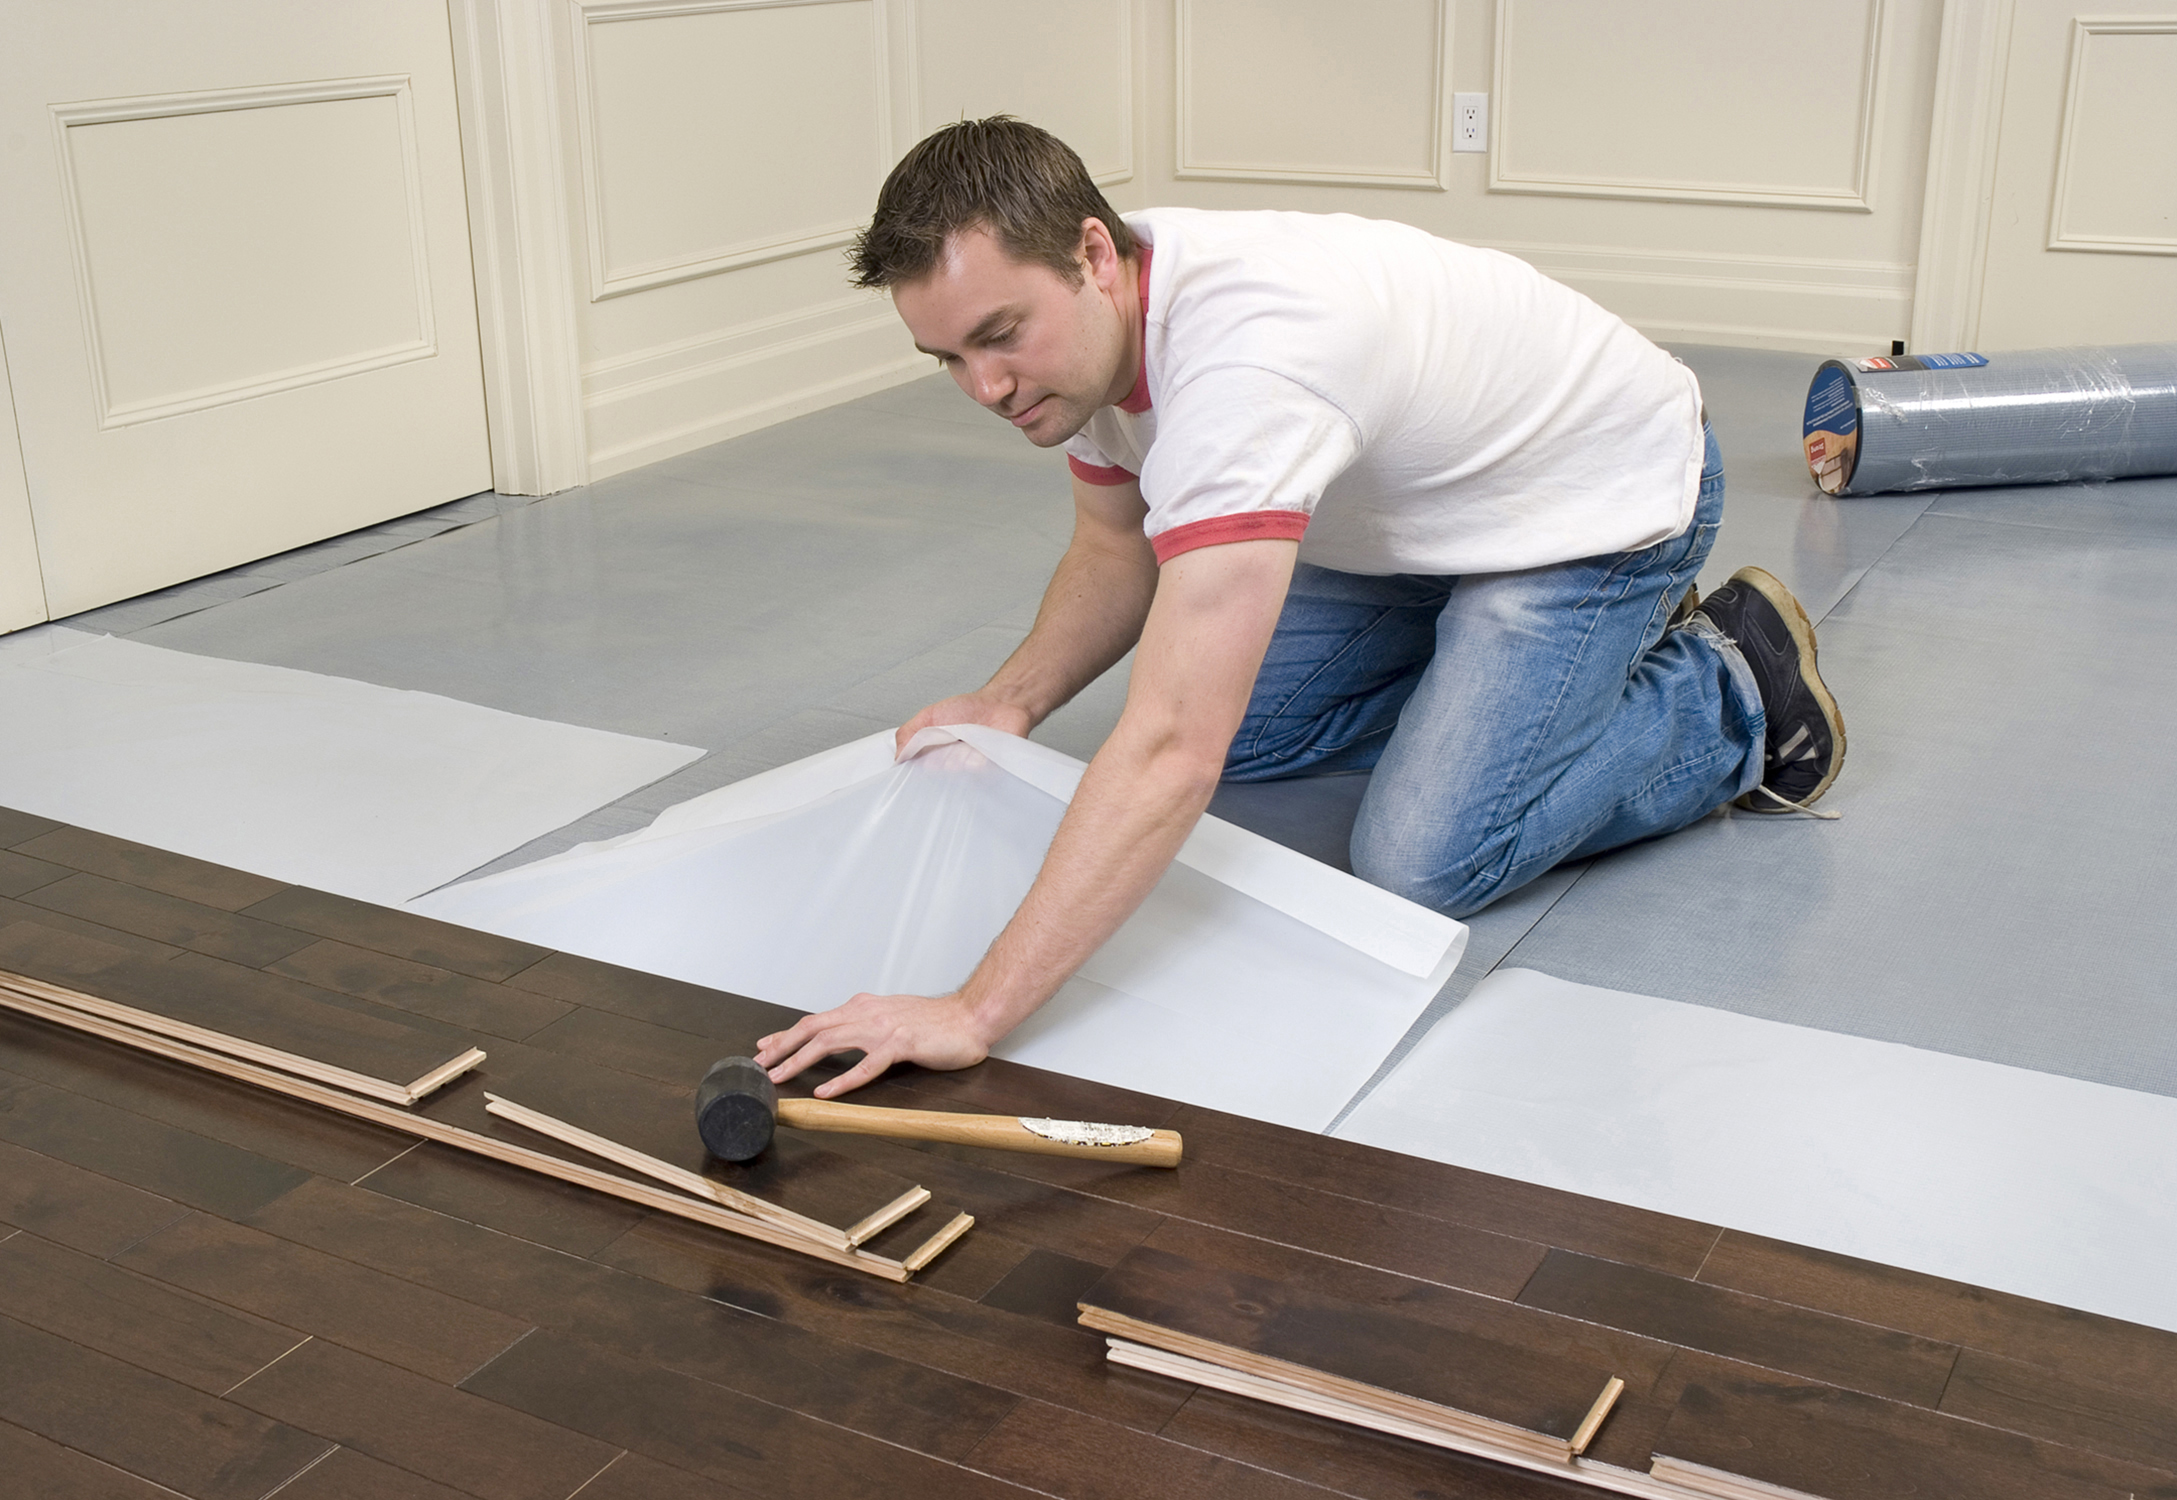 11 steps how to install laminate flooring hirerush blog for Installing laminate flooring